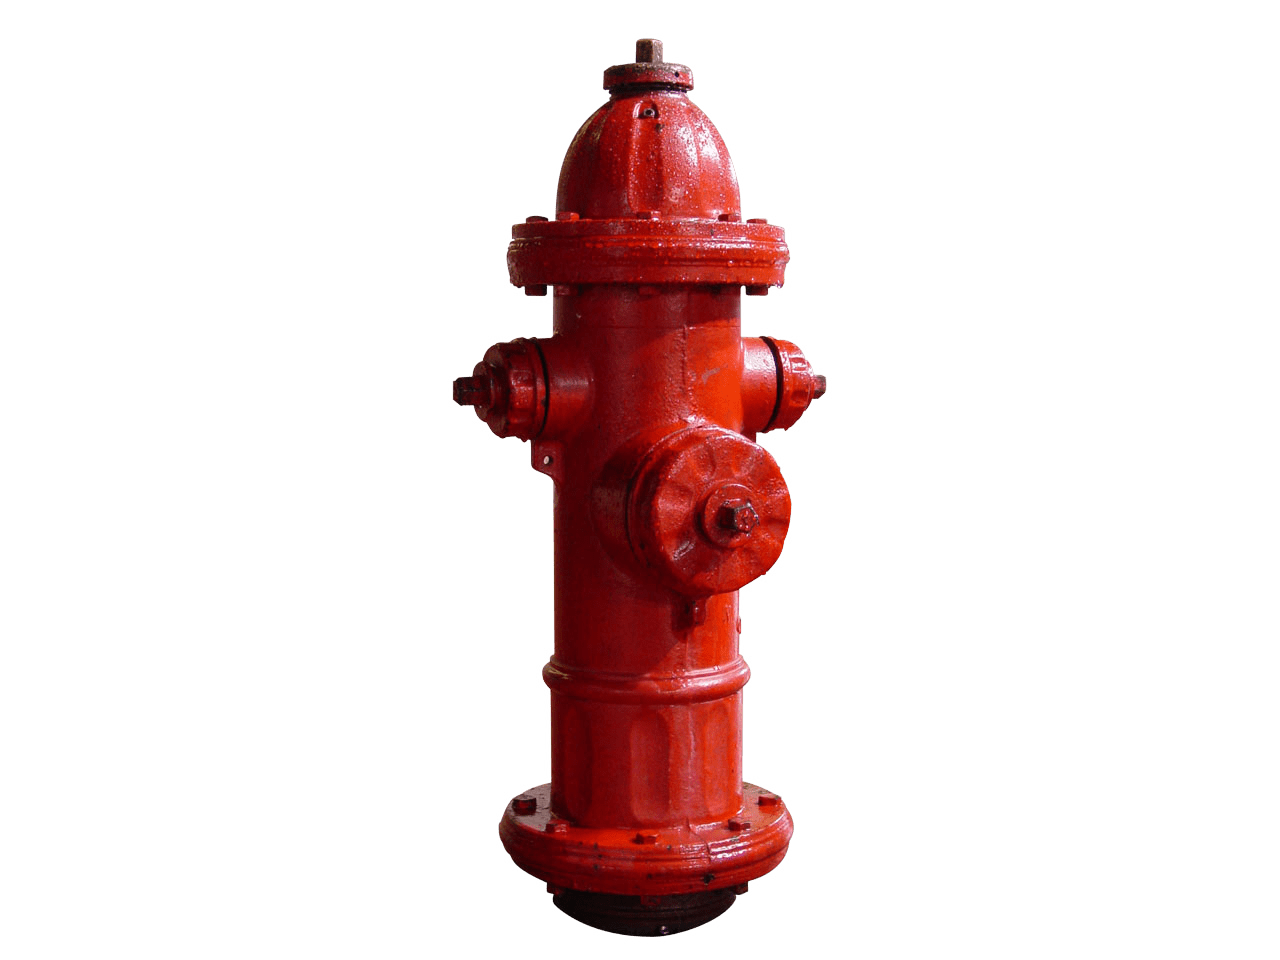 hydrant_1552786332894.png